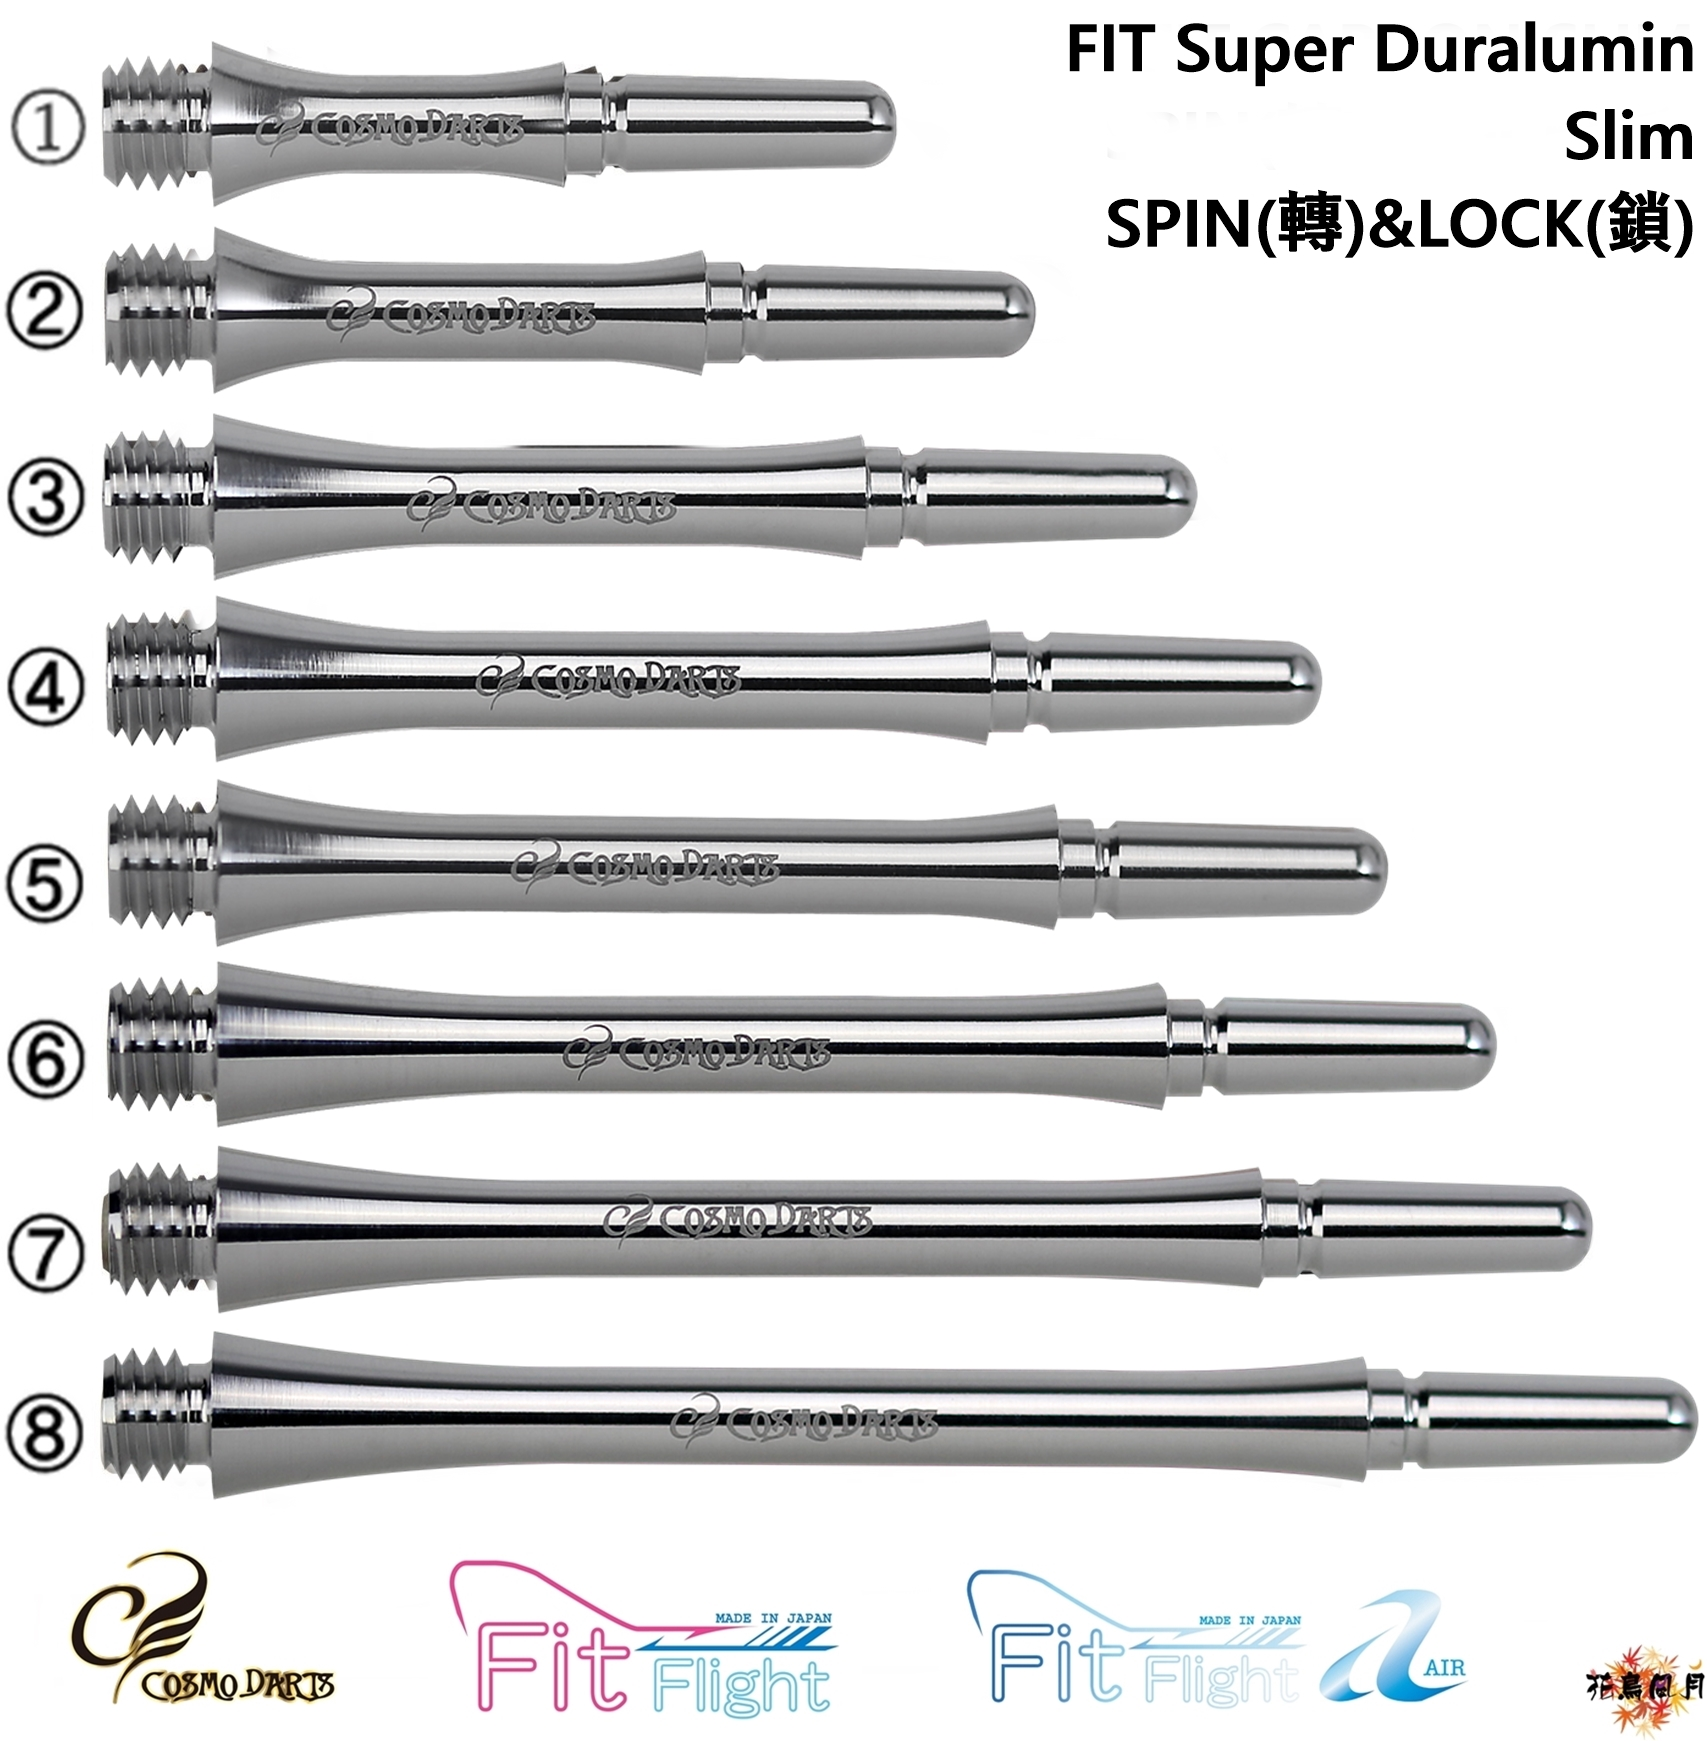 Fit-Super-Duralumin-Slim